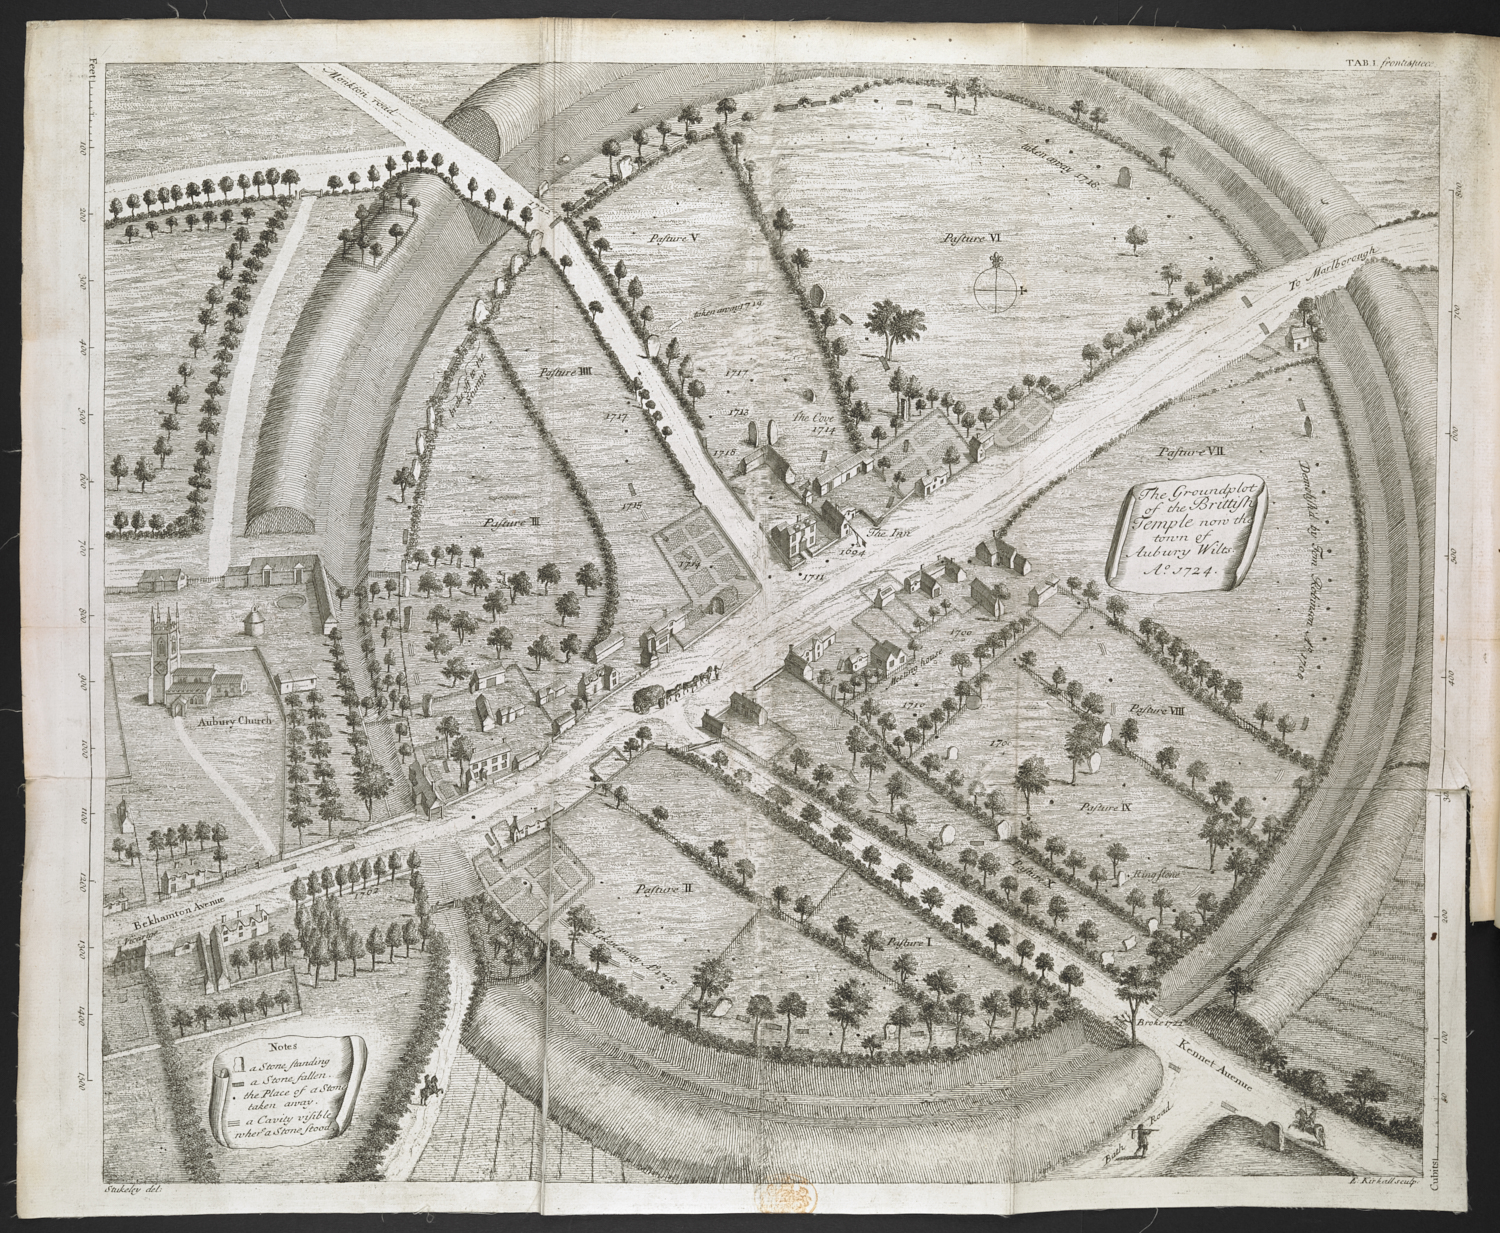 Elisha Kirkall (about 1682-1742) after William Stukeley (1687-1765), The Groundplot of the British Temple now the Town of Aubury Wilts, AD 1724, printed for the author, London, 1743